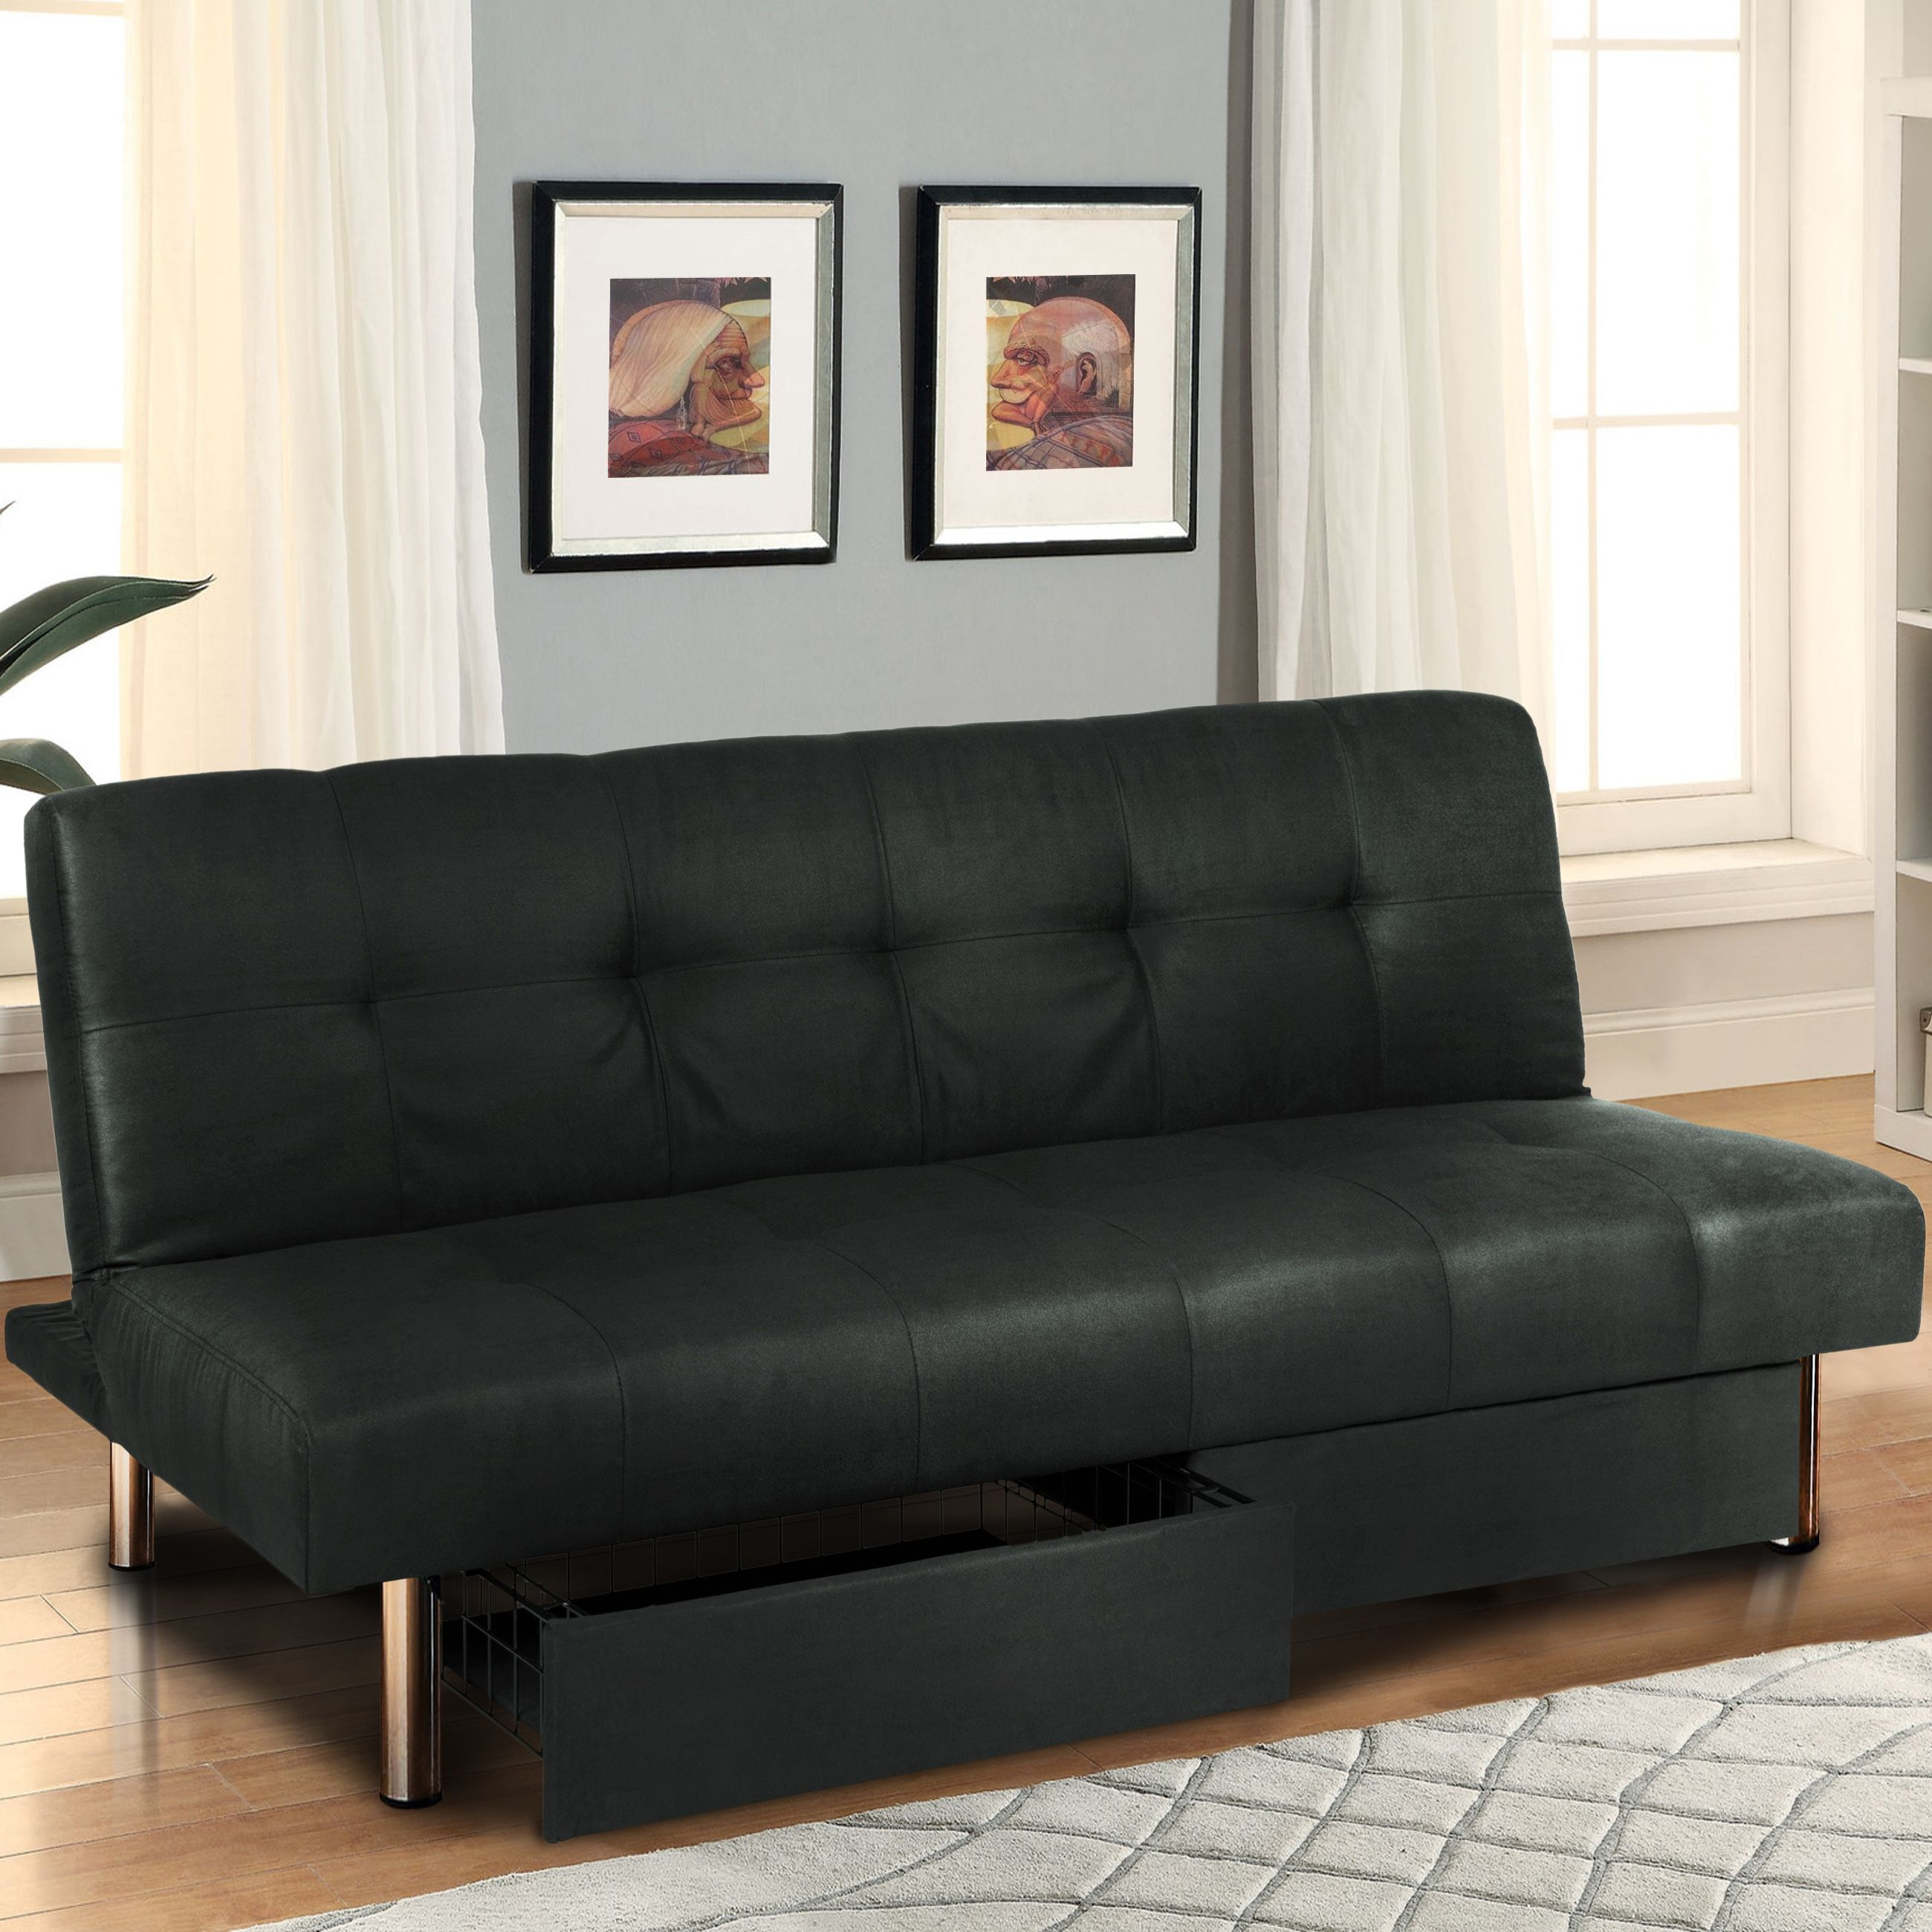 best choice products microfiber futon folding sofa bed couch w  mattress  u0026 storage sleep recliner lounger find and  pare more furniture deals at http   extrabigfoot        rh   pinterest